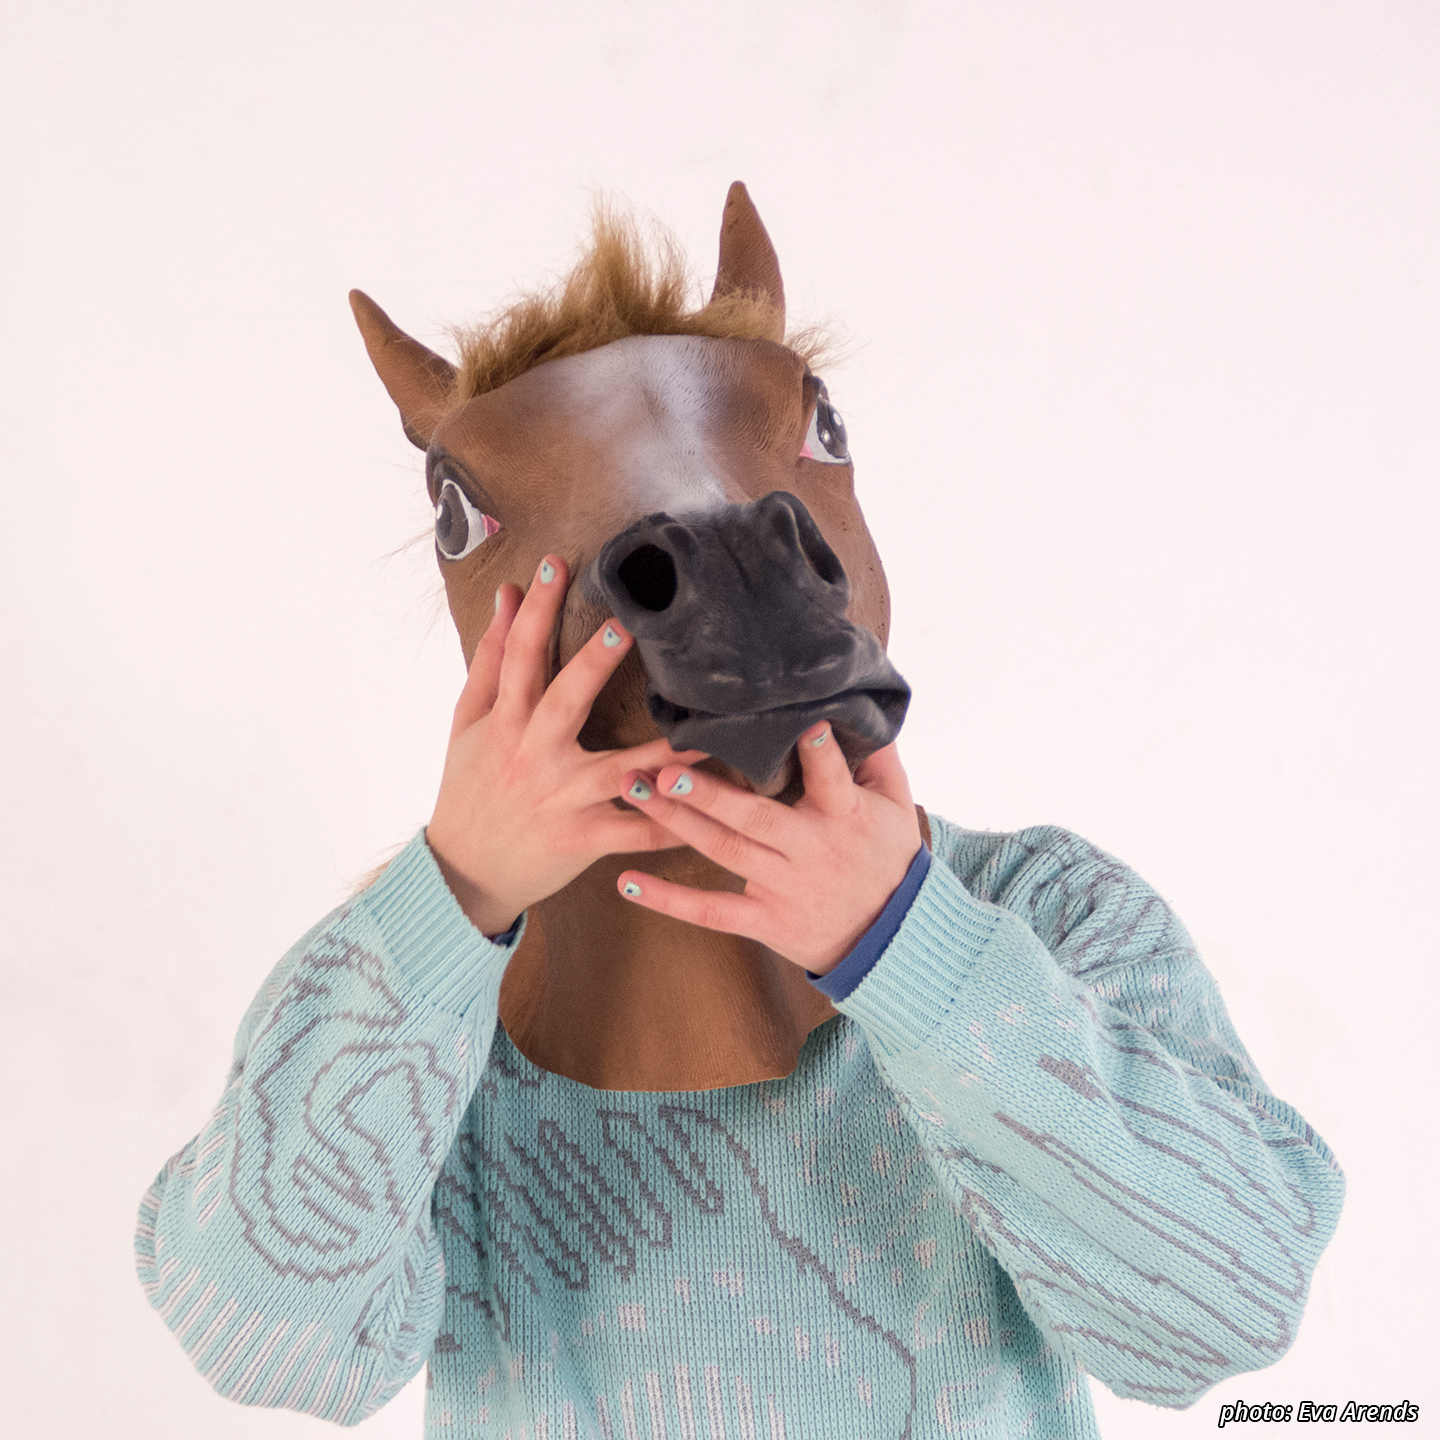 Picture of a character (Horseboy) from the waist up in a light blue retro polyester sweater with abstract design. His nails are painted a similar color and he wears a latex chestnut horse mask. He has his hands closed under his jaw as though he has just said something regrettable.